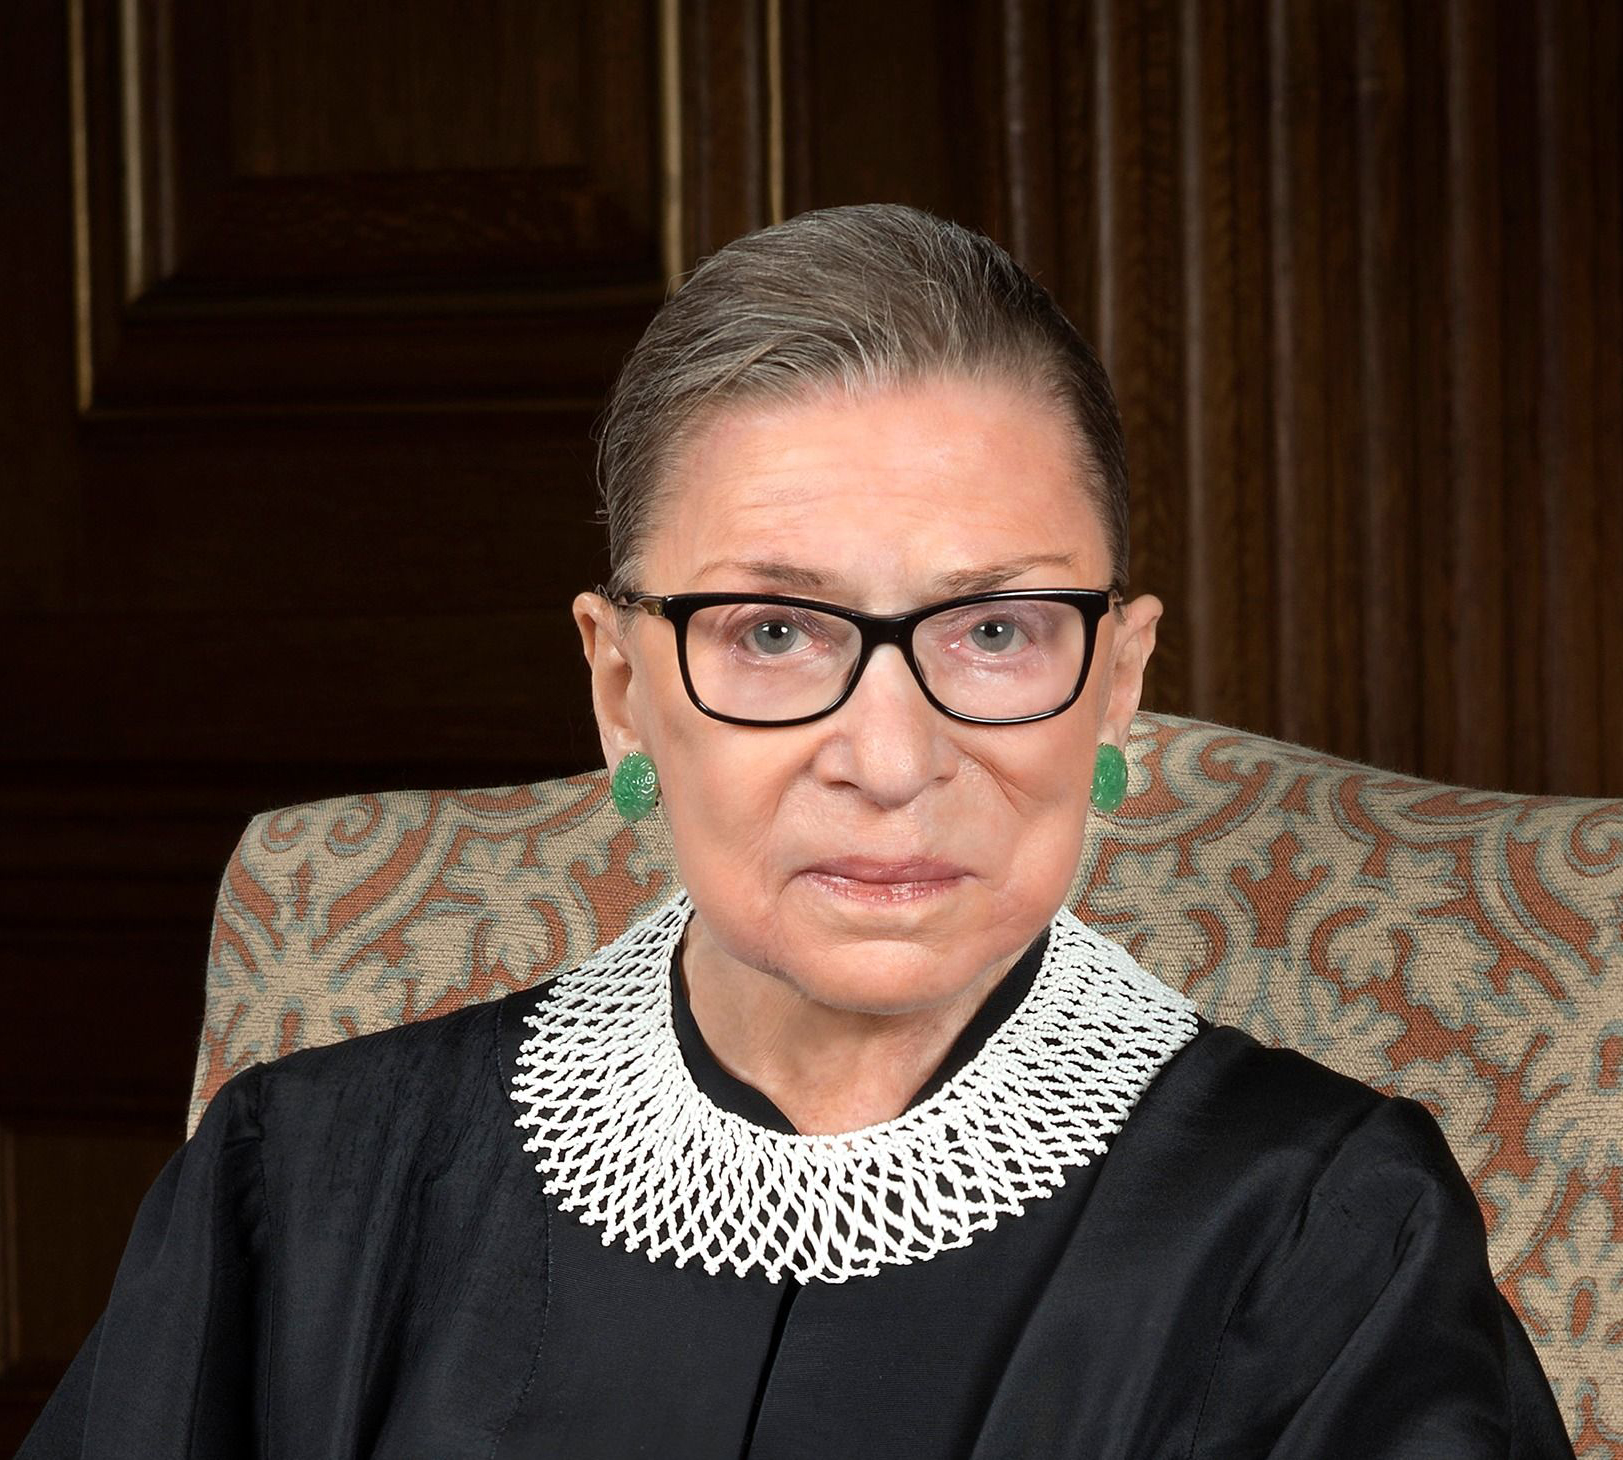 Headshot of U.S. Supreme Court Justice Ruth Bader Ginsburg